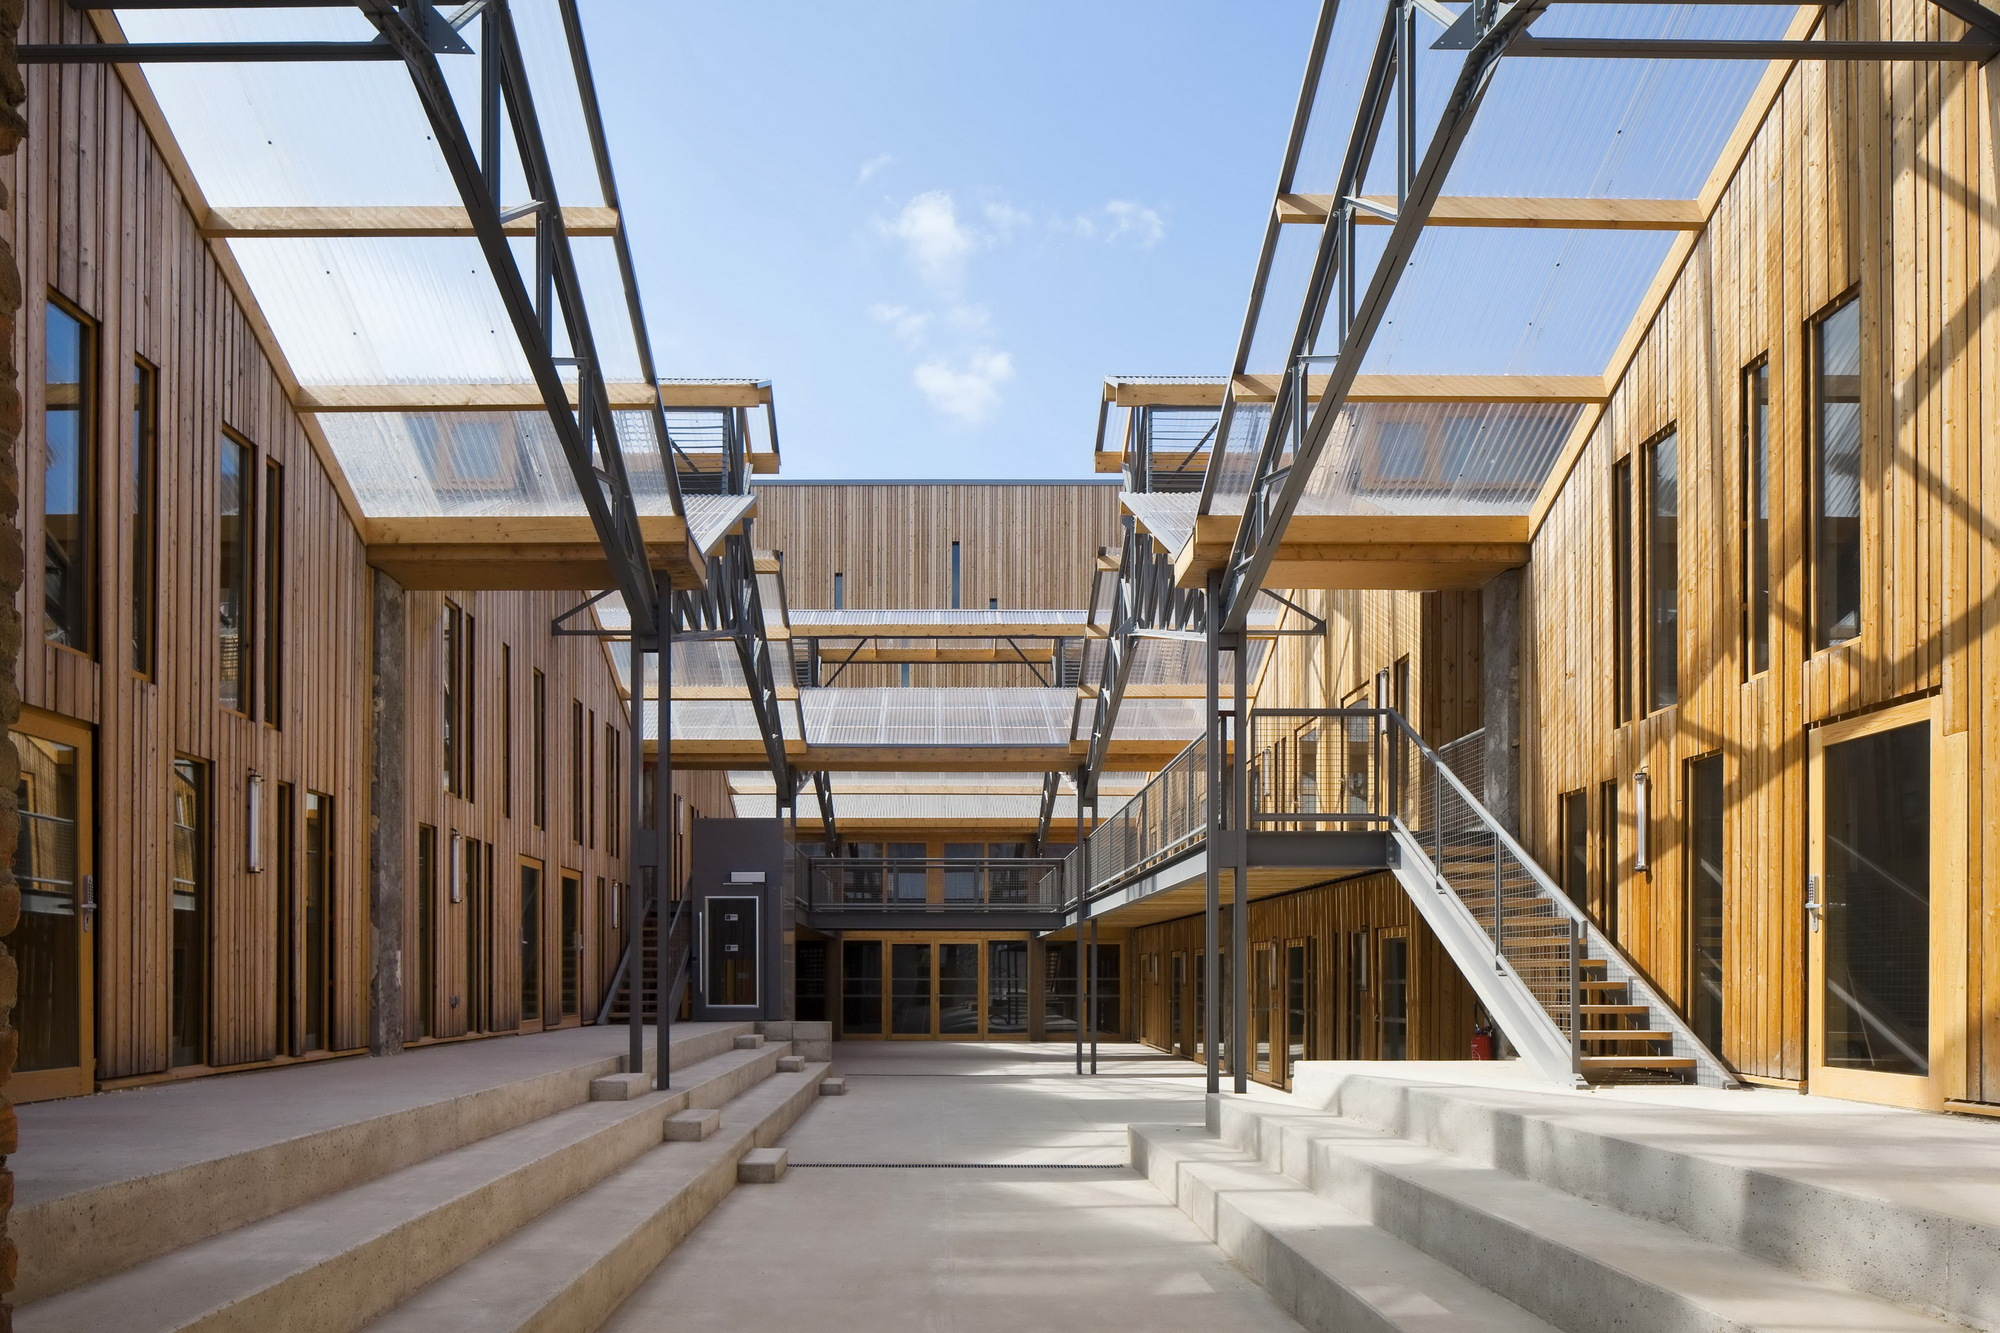 Circus Arts Conservatory / Adh Architects (13)